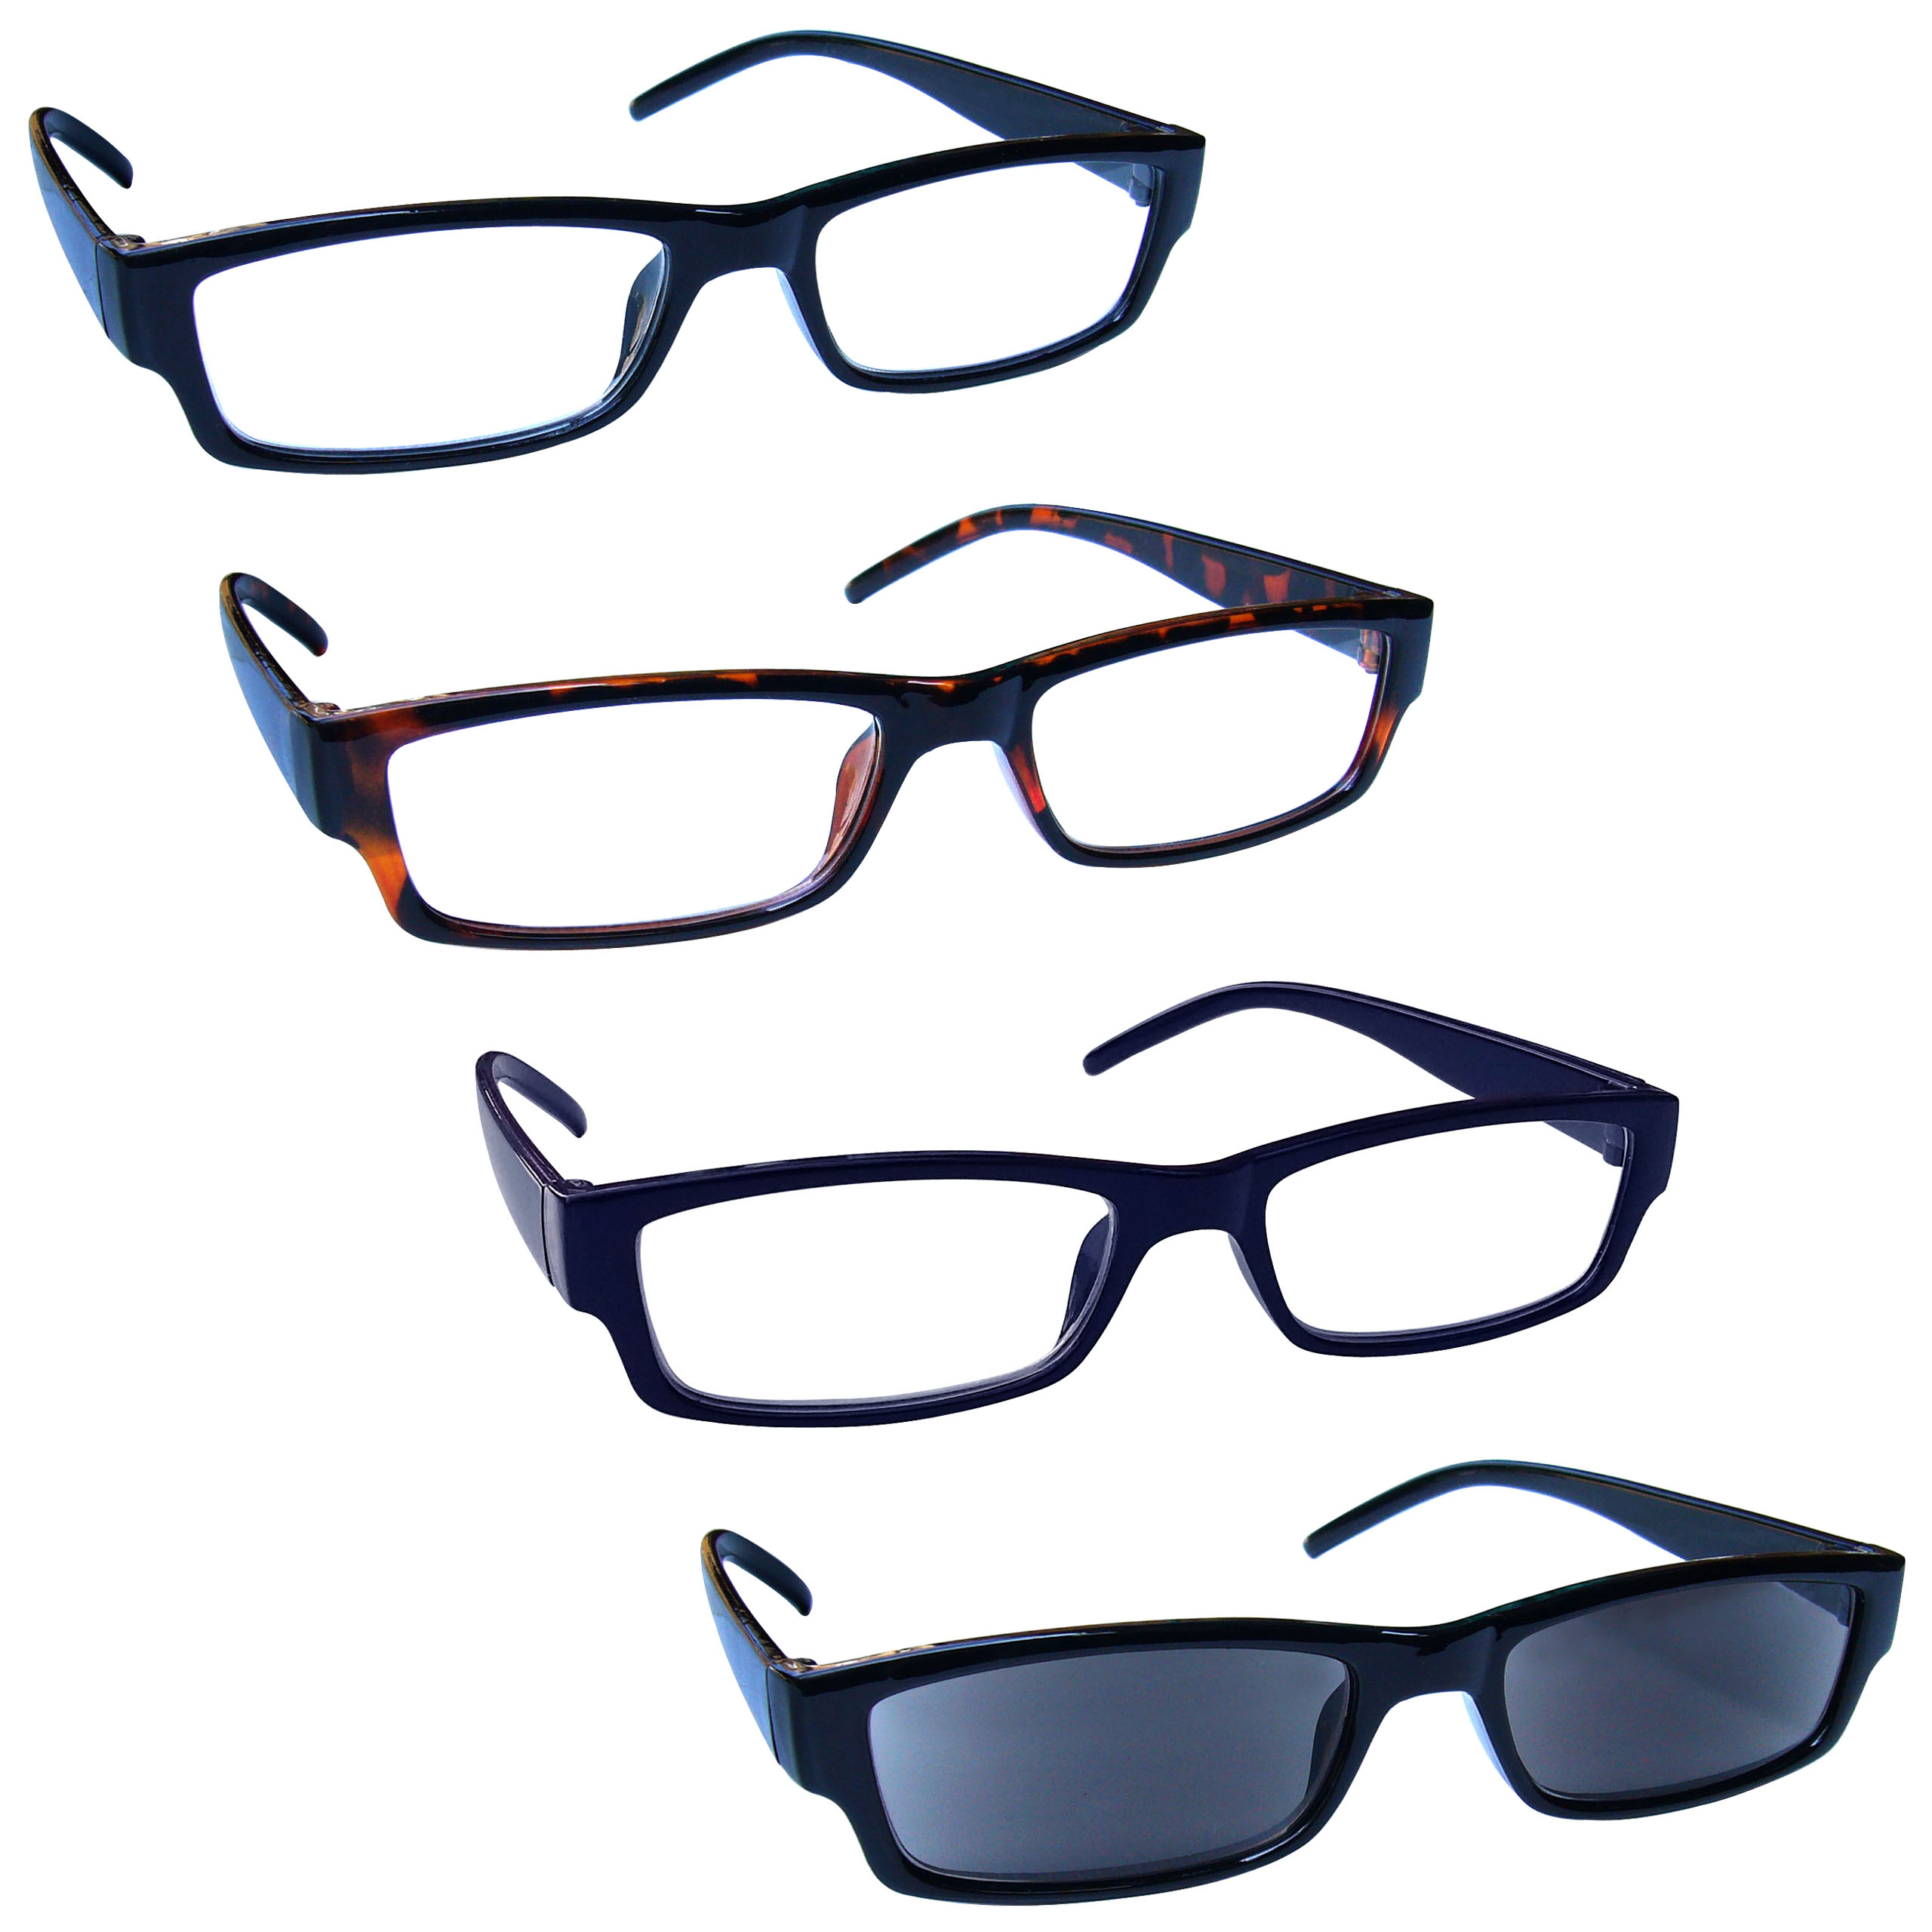 UV Reader Lightweight Sun Readers Reading Glasses ...